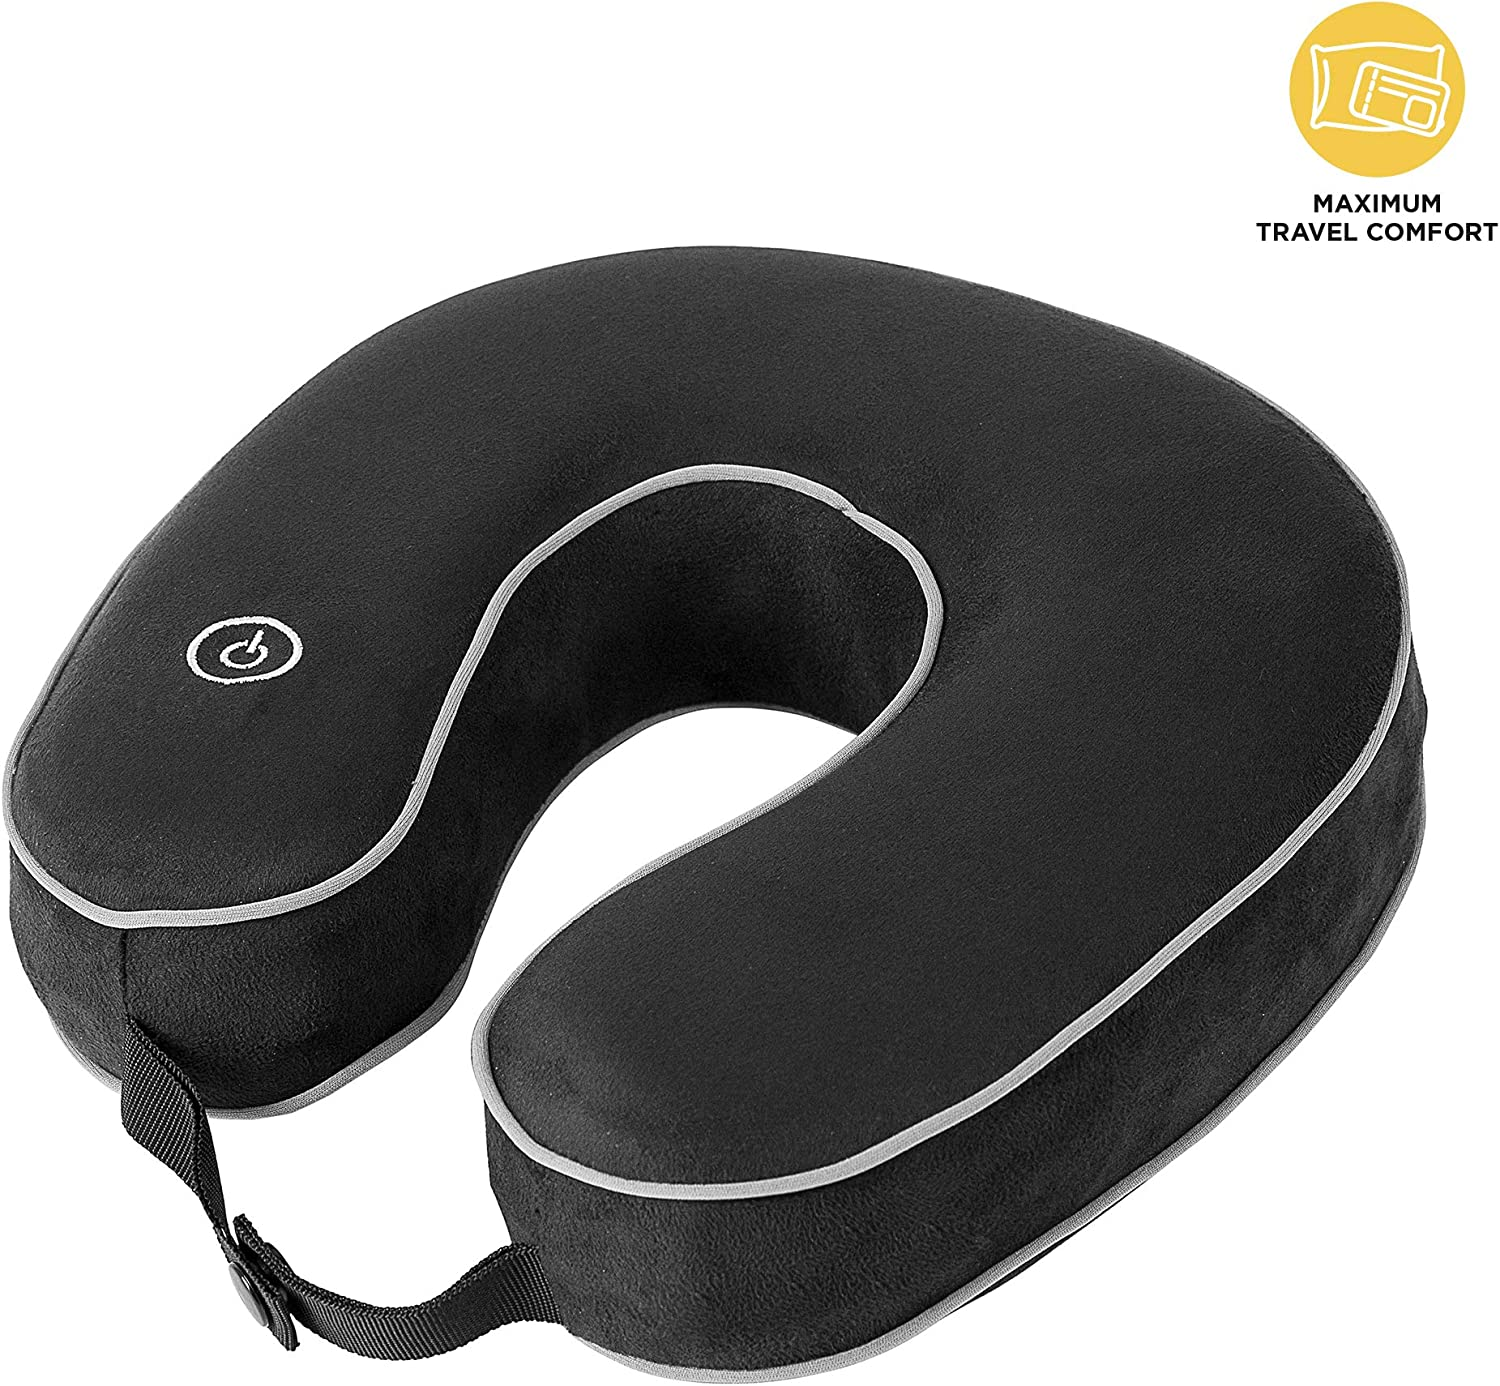 HoMedics Mobile Comfort Vibrating Massage Travel Neck Pillow with Comfortable U Shape Memory Foam Neck Support, Invigorating Fatigue Relief Headrest,